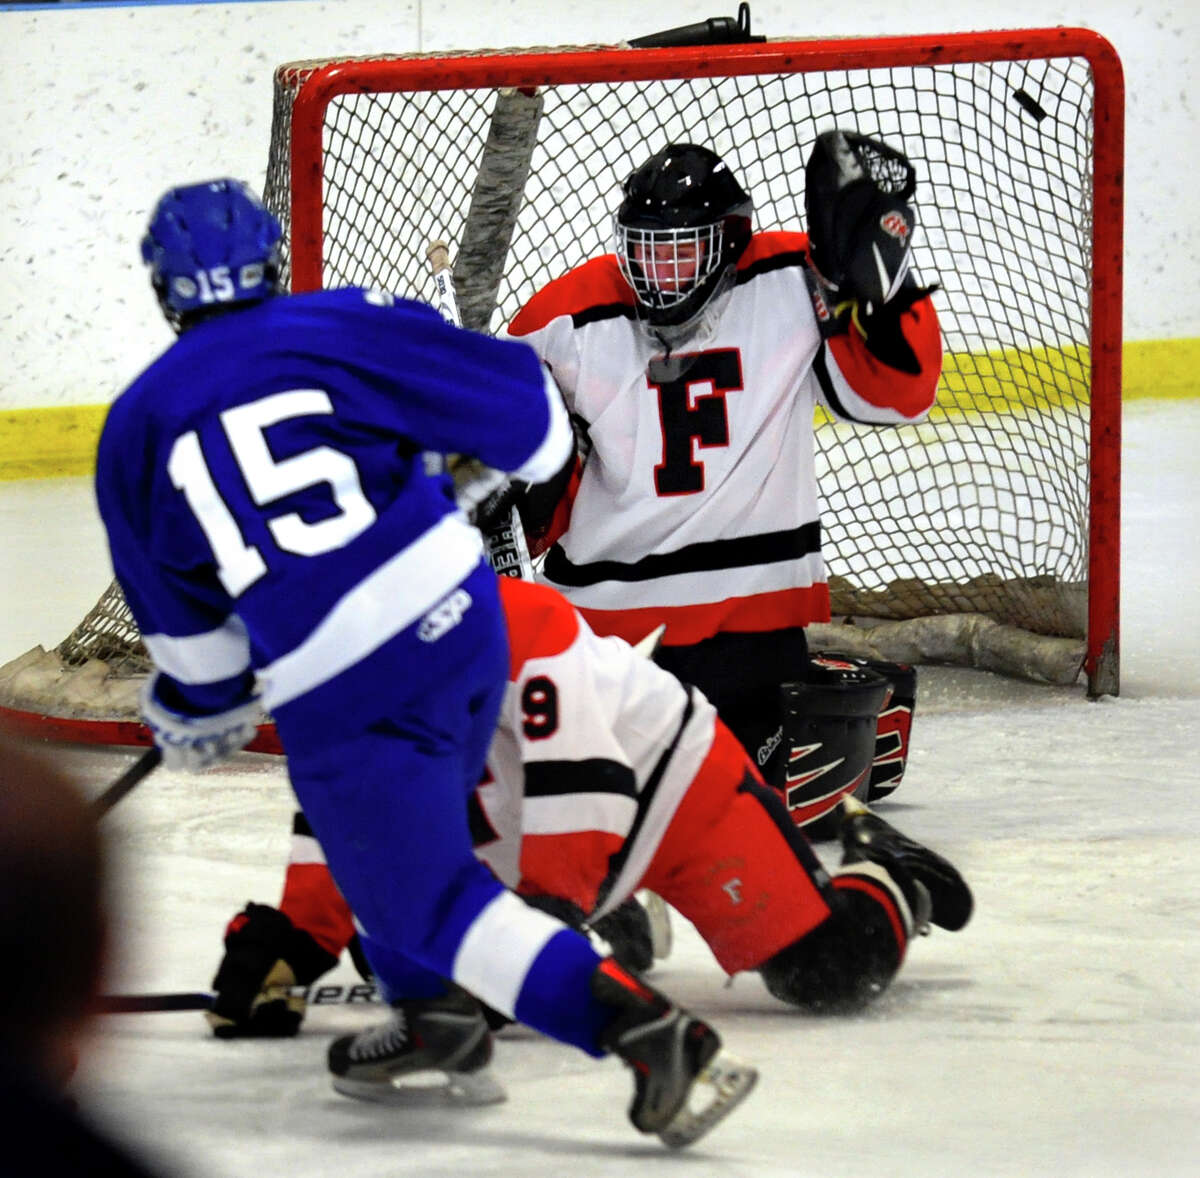 Fairfield Warde/Ludlowe goalie #1 Connor Frawley fails to stop a shot by Darien's #15 Craig Miller, during boys hockey action at the Wonderland of Ice in Bridgeport, Conn. on Saturday January 12, 2013.